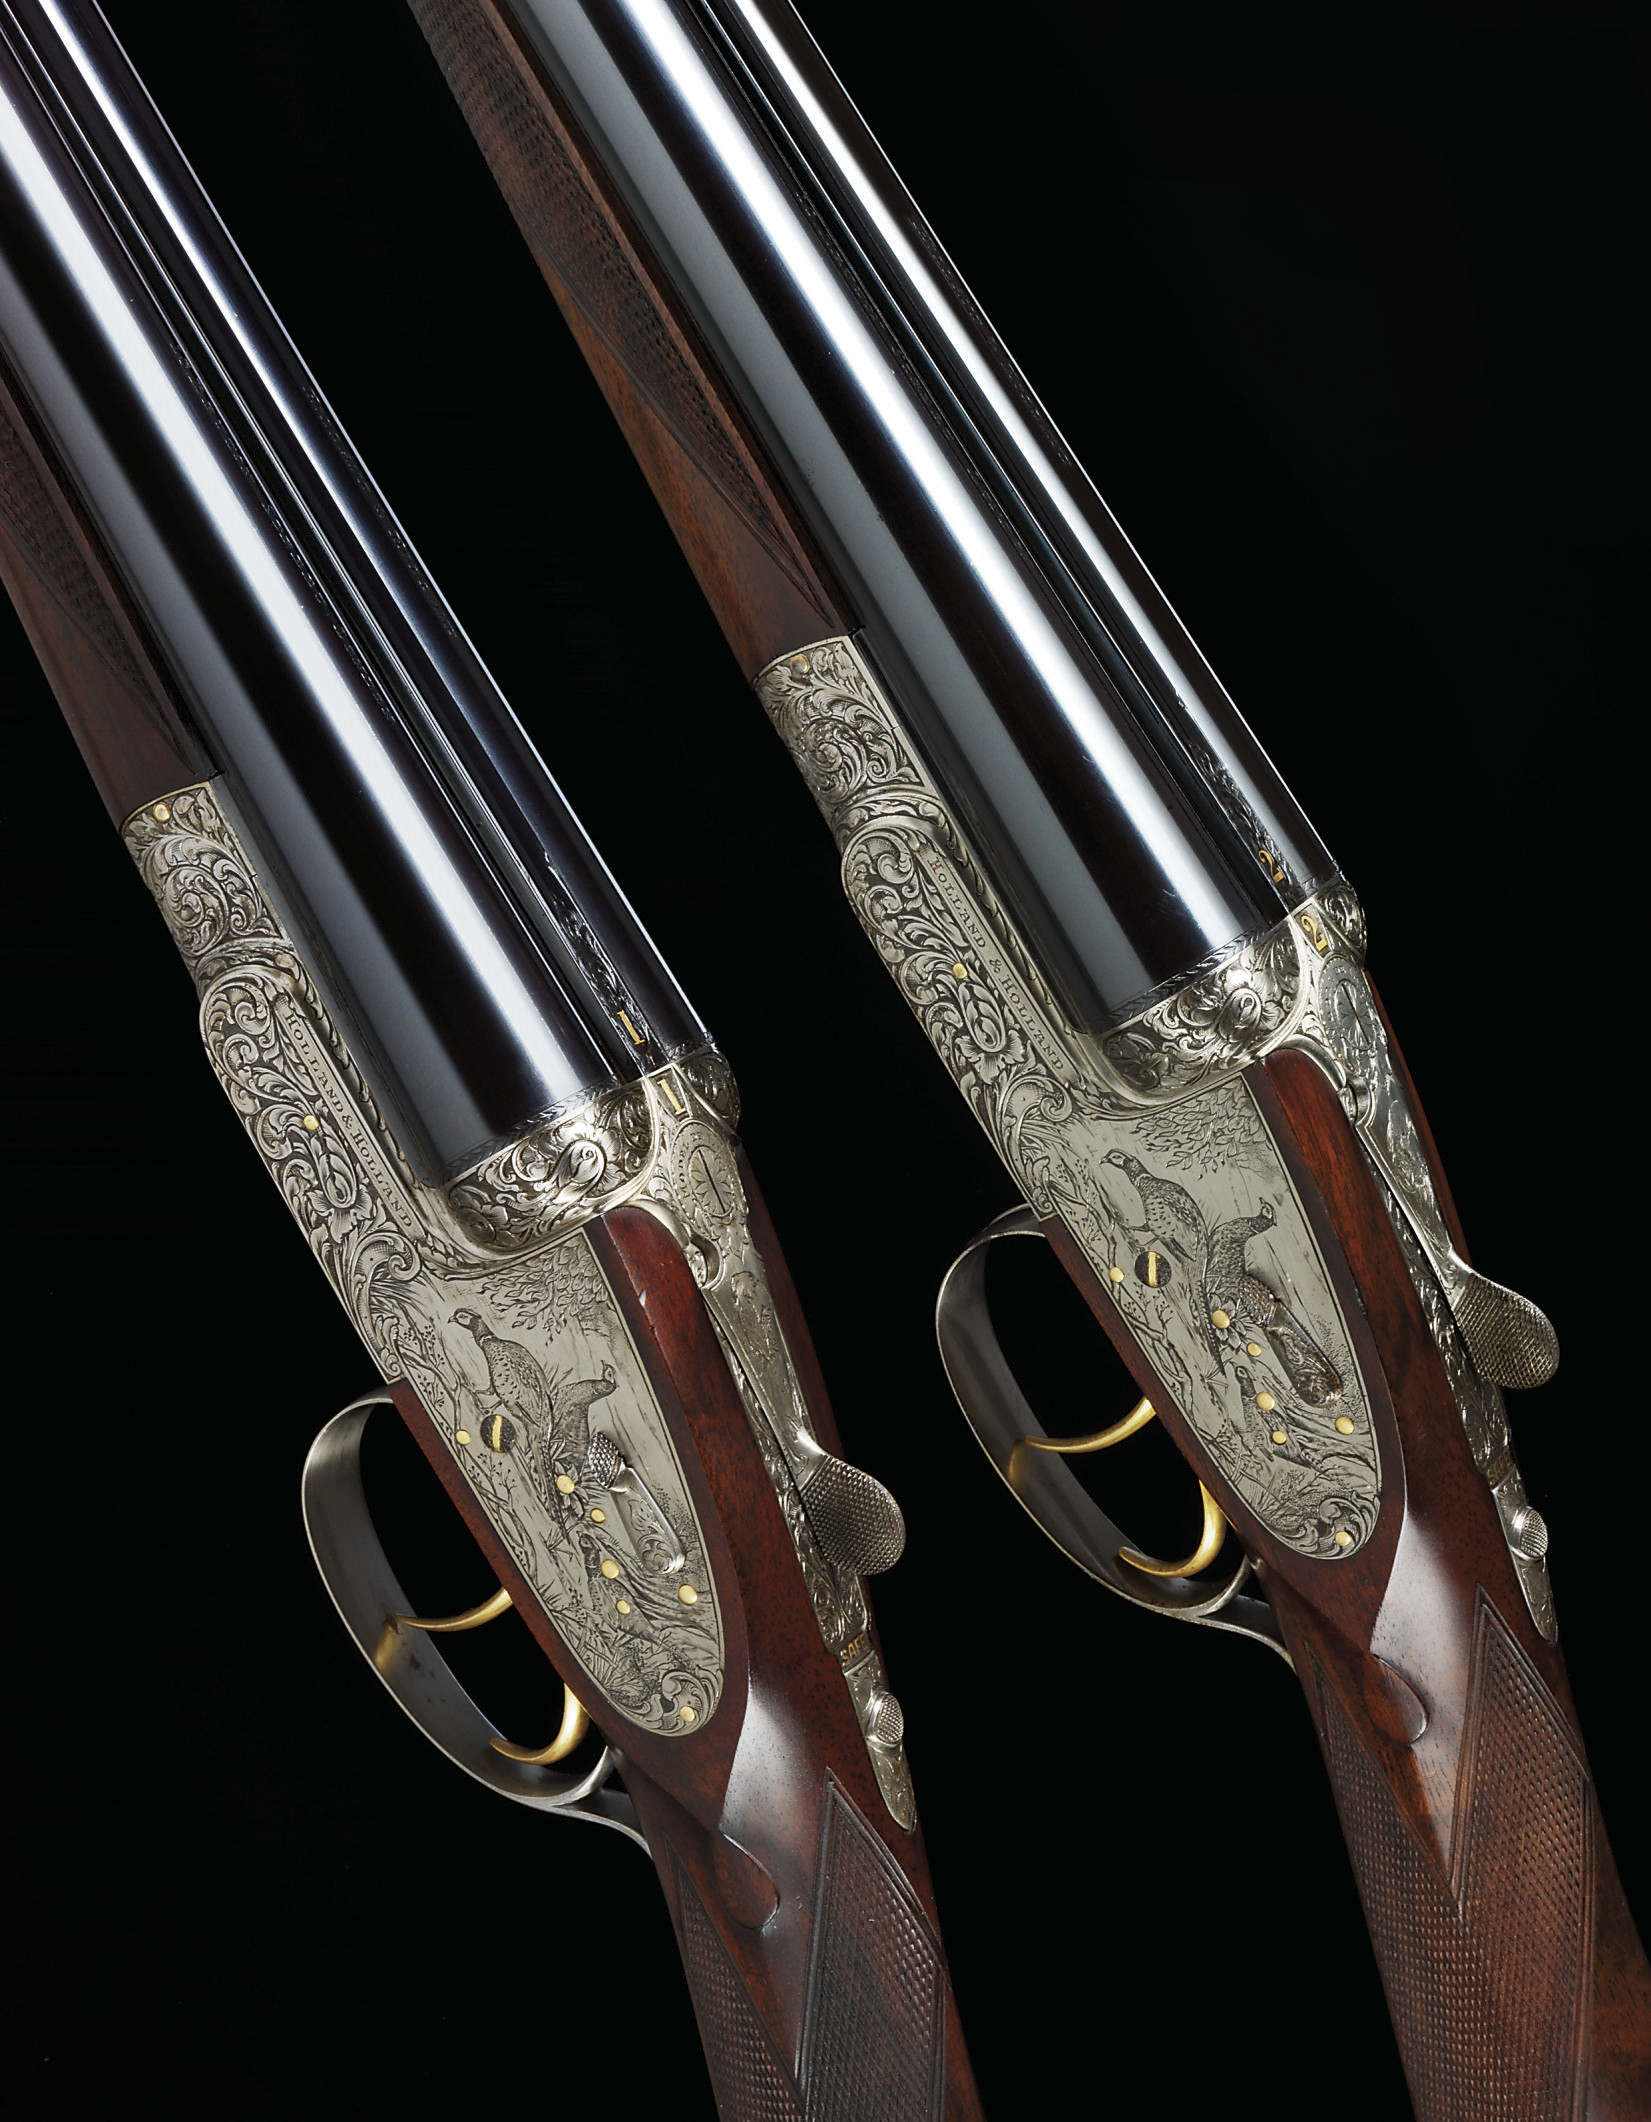 AN EXCEPTIONALLY FINE PAIR OF 12-BORE SELF-OPENING SIDELOCK EJECTOR GUNS BY HOLLAND & HOLLAND, NO. 40297/8